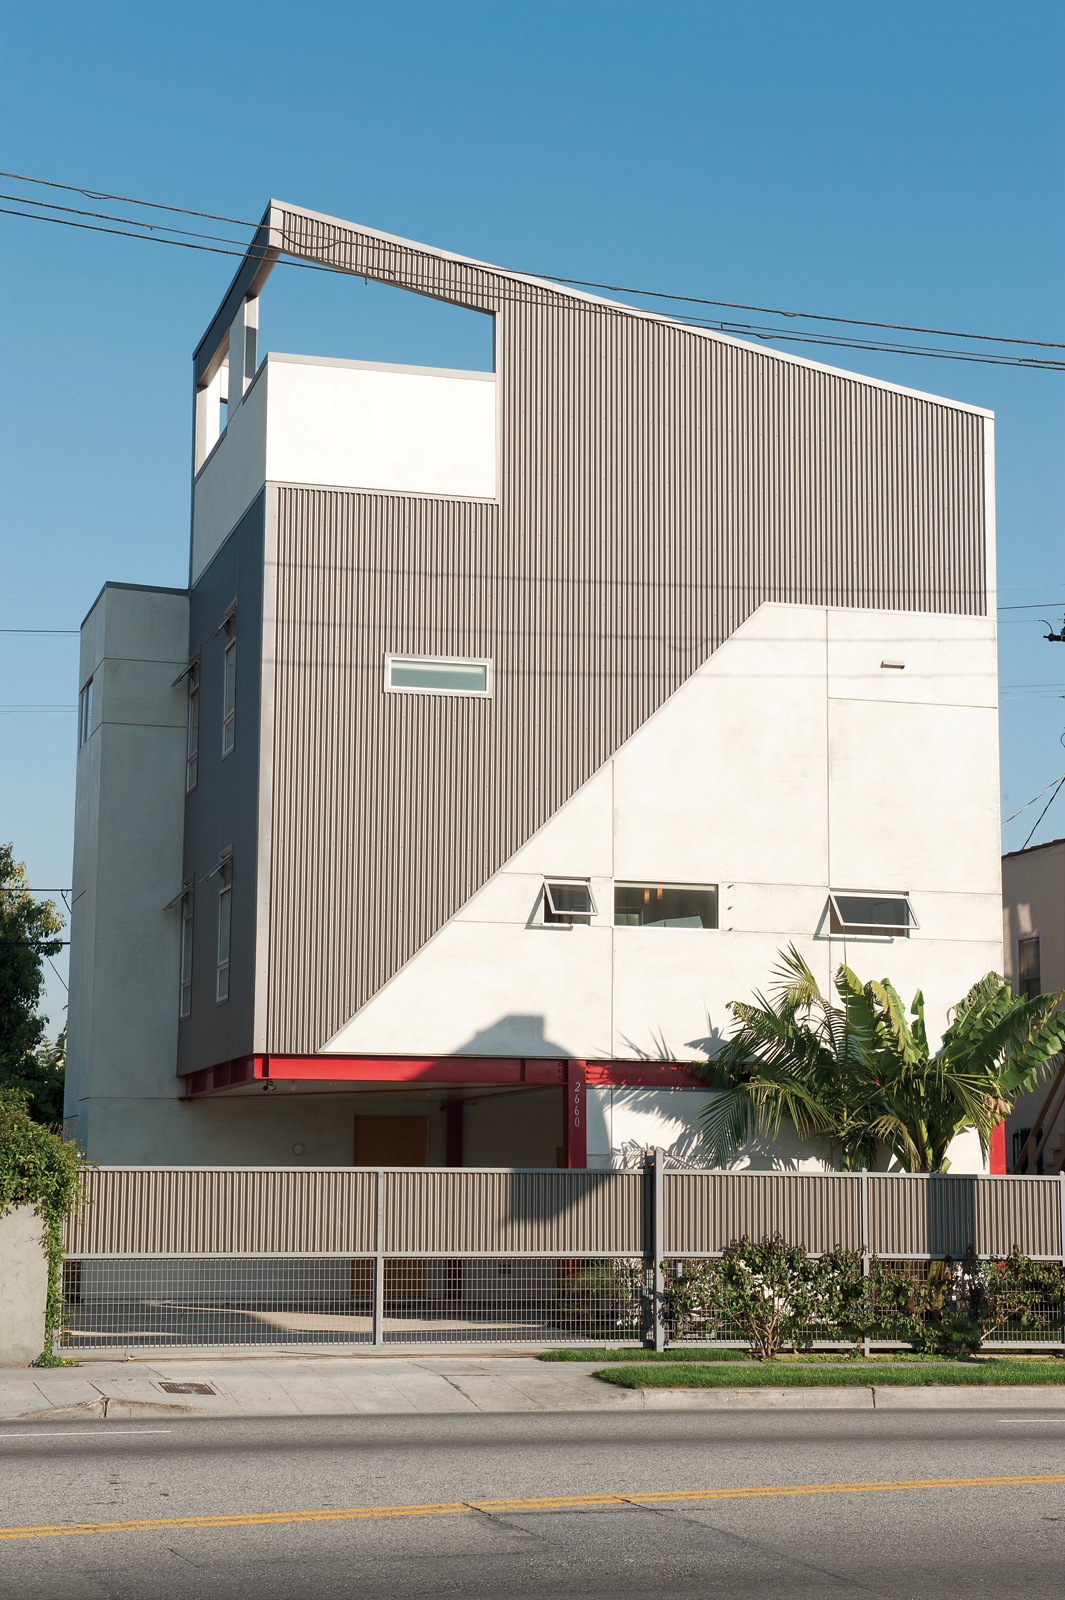 Modern home with corrugated sheet metal facade